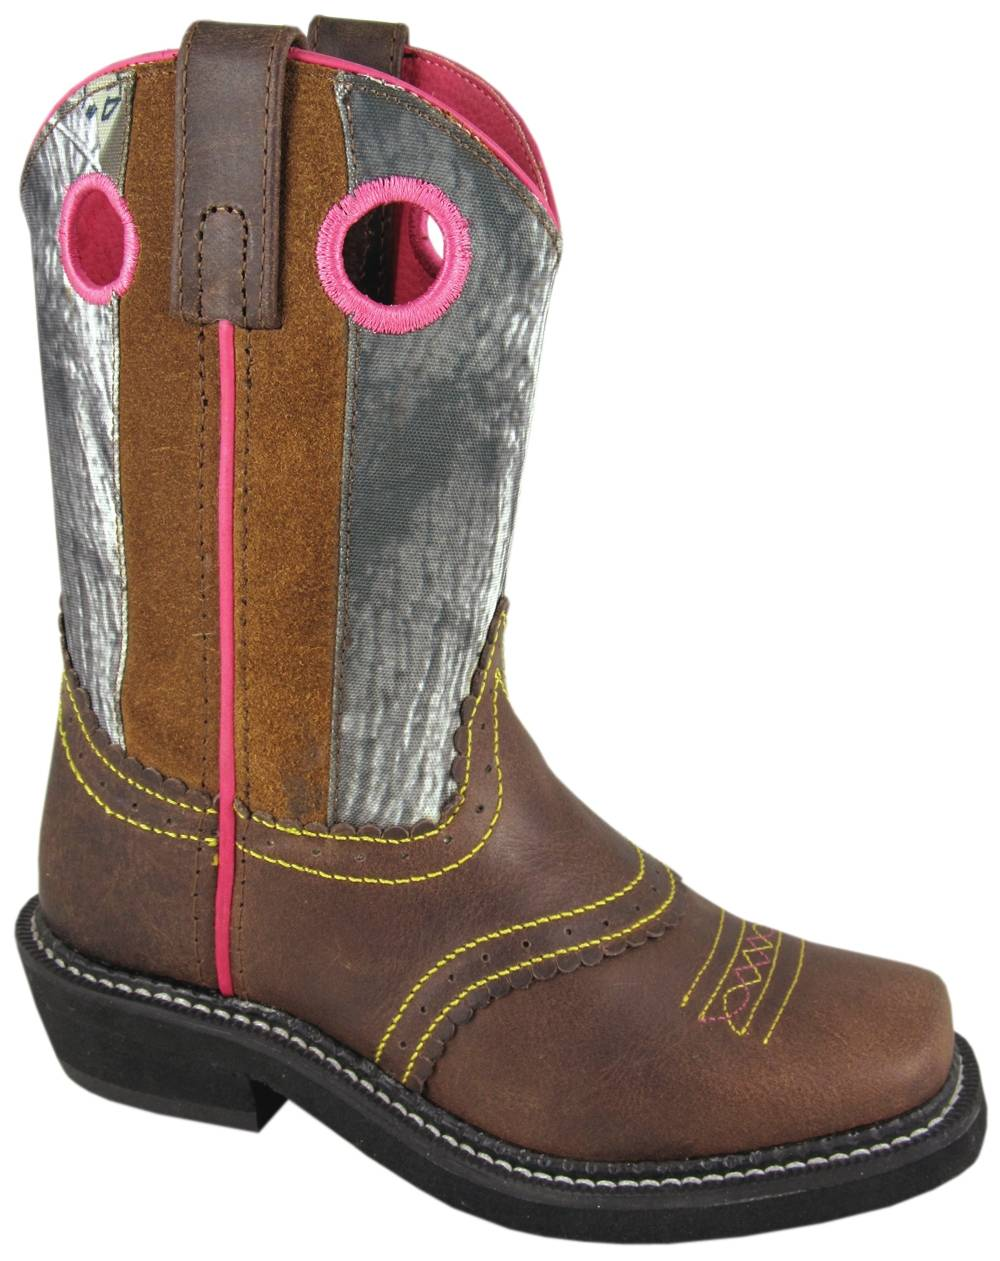 OPEN BOX ITEM: Smoky Mountain Kids Pawnee Leather Western Boot